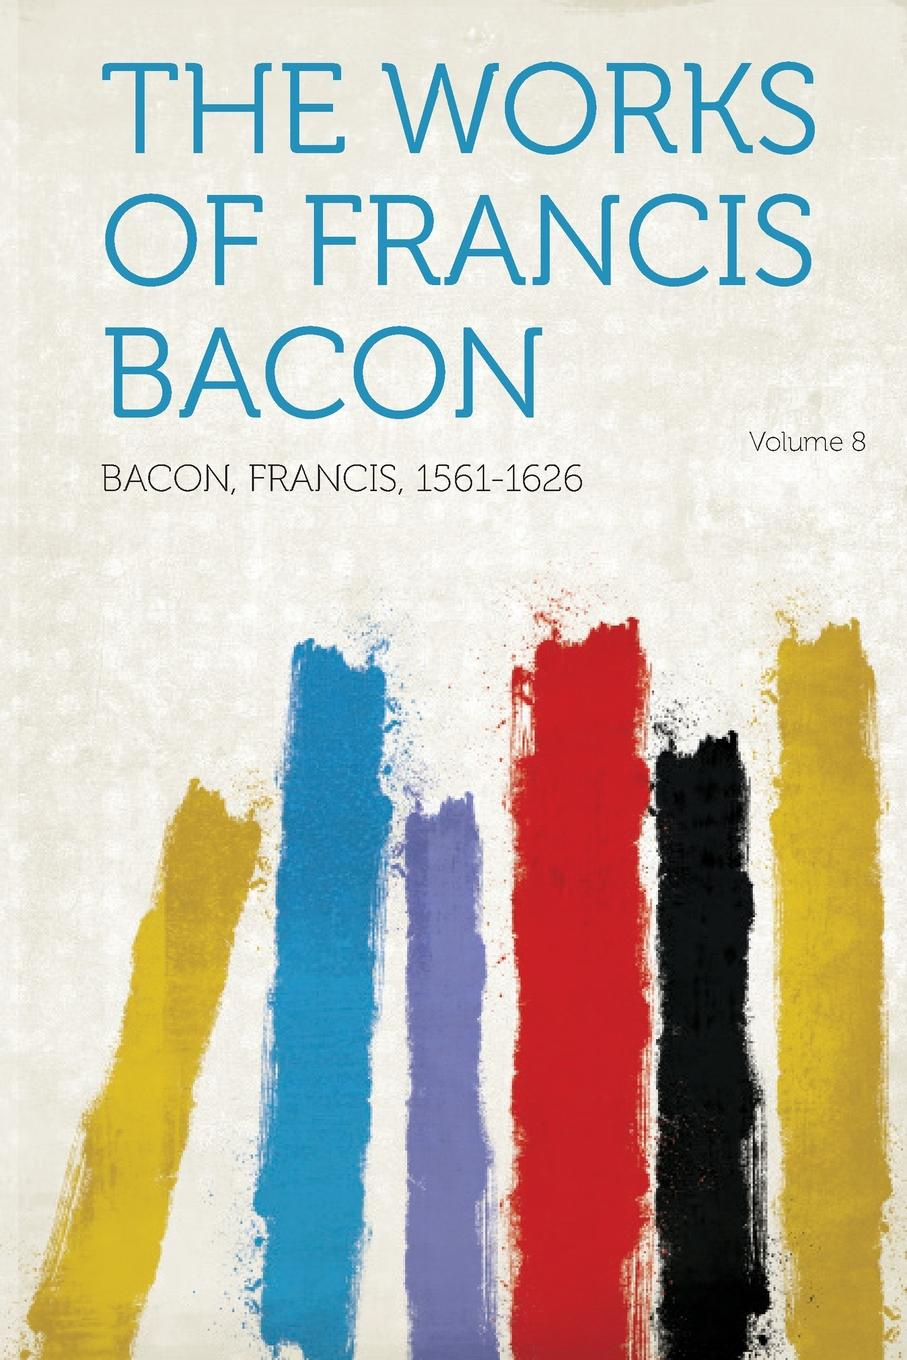 Francis Bacon The Works of Francis Bacon Volume 8 фрэнсис бэкон the works of francis bacon volume 11